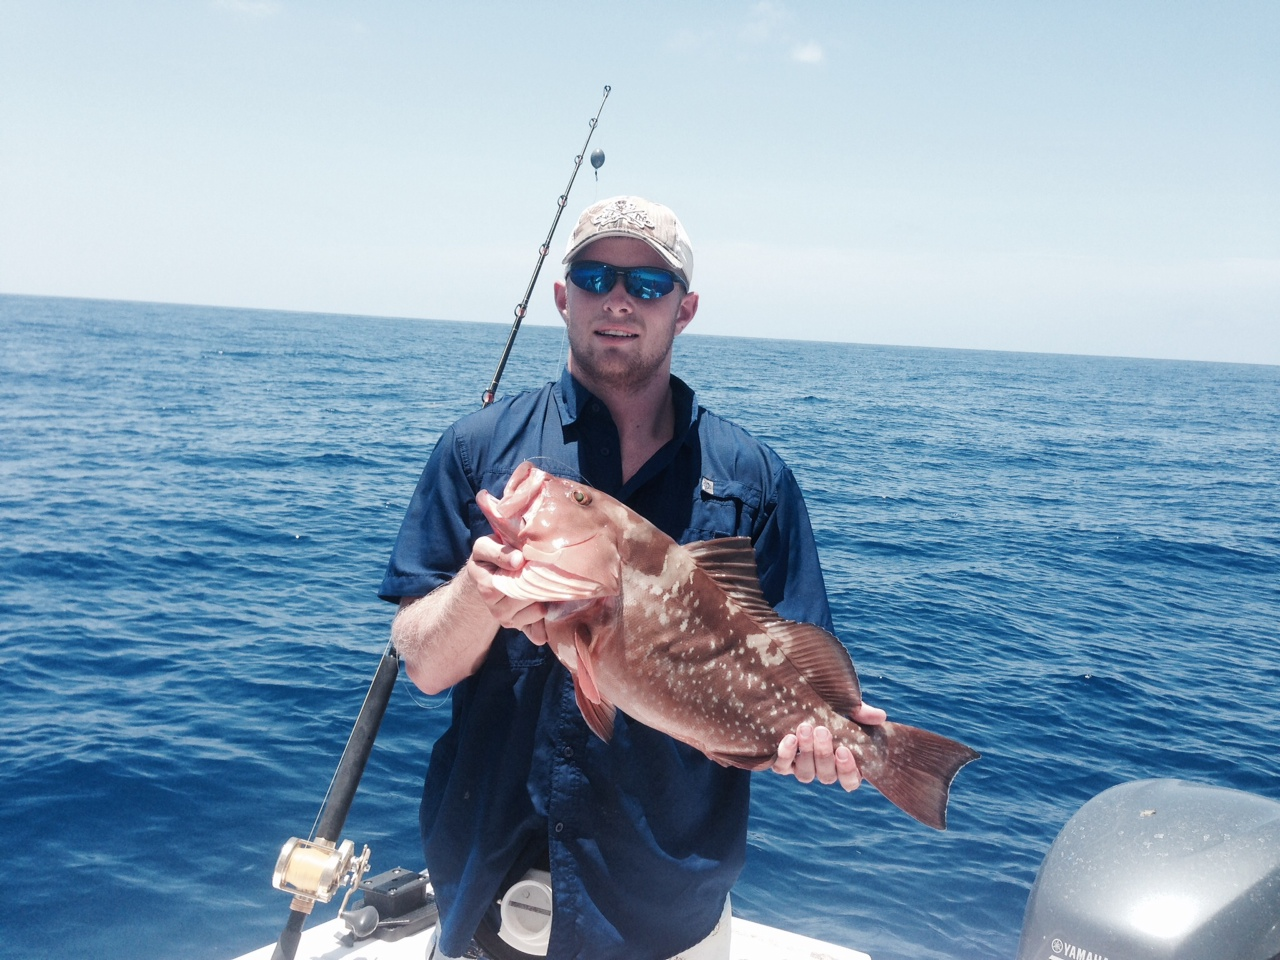 Logan caught this red grouper on a full day fishing charter off Marathon in the Fl Keys